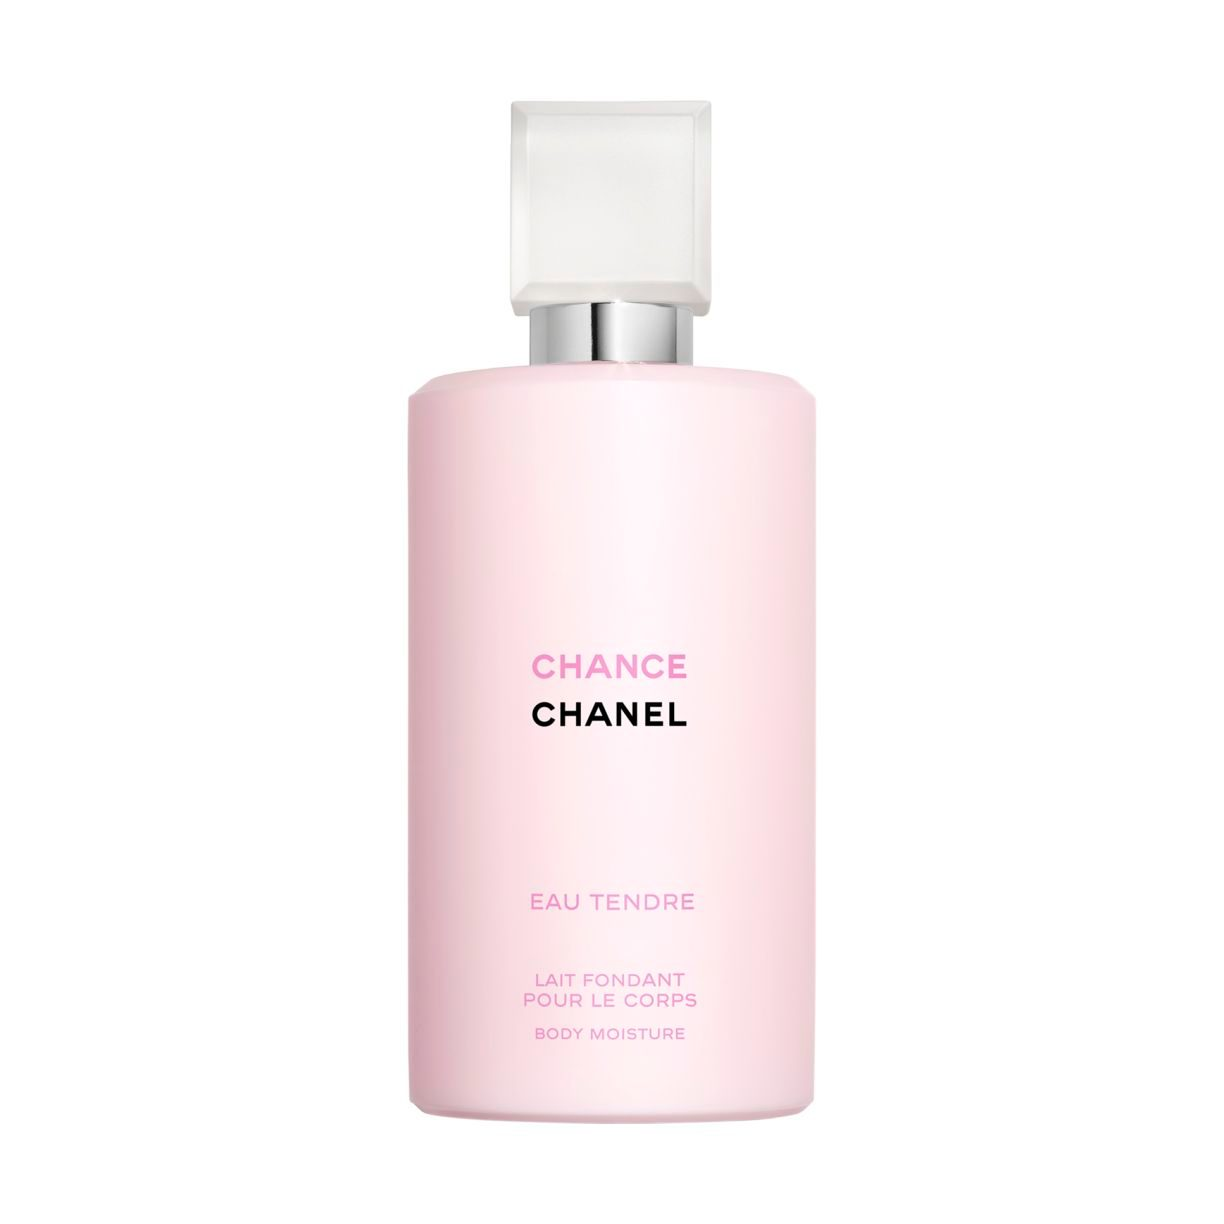 CHANCE EAU TENDRE SMELTZACHTE BODYMILK 200ml